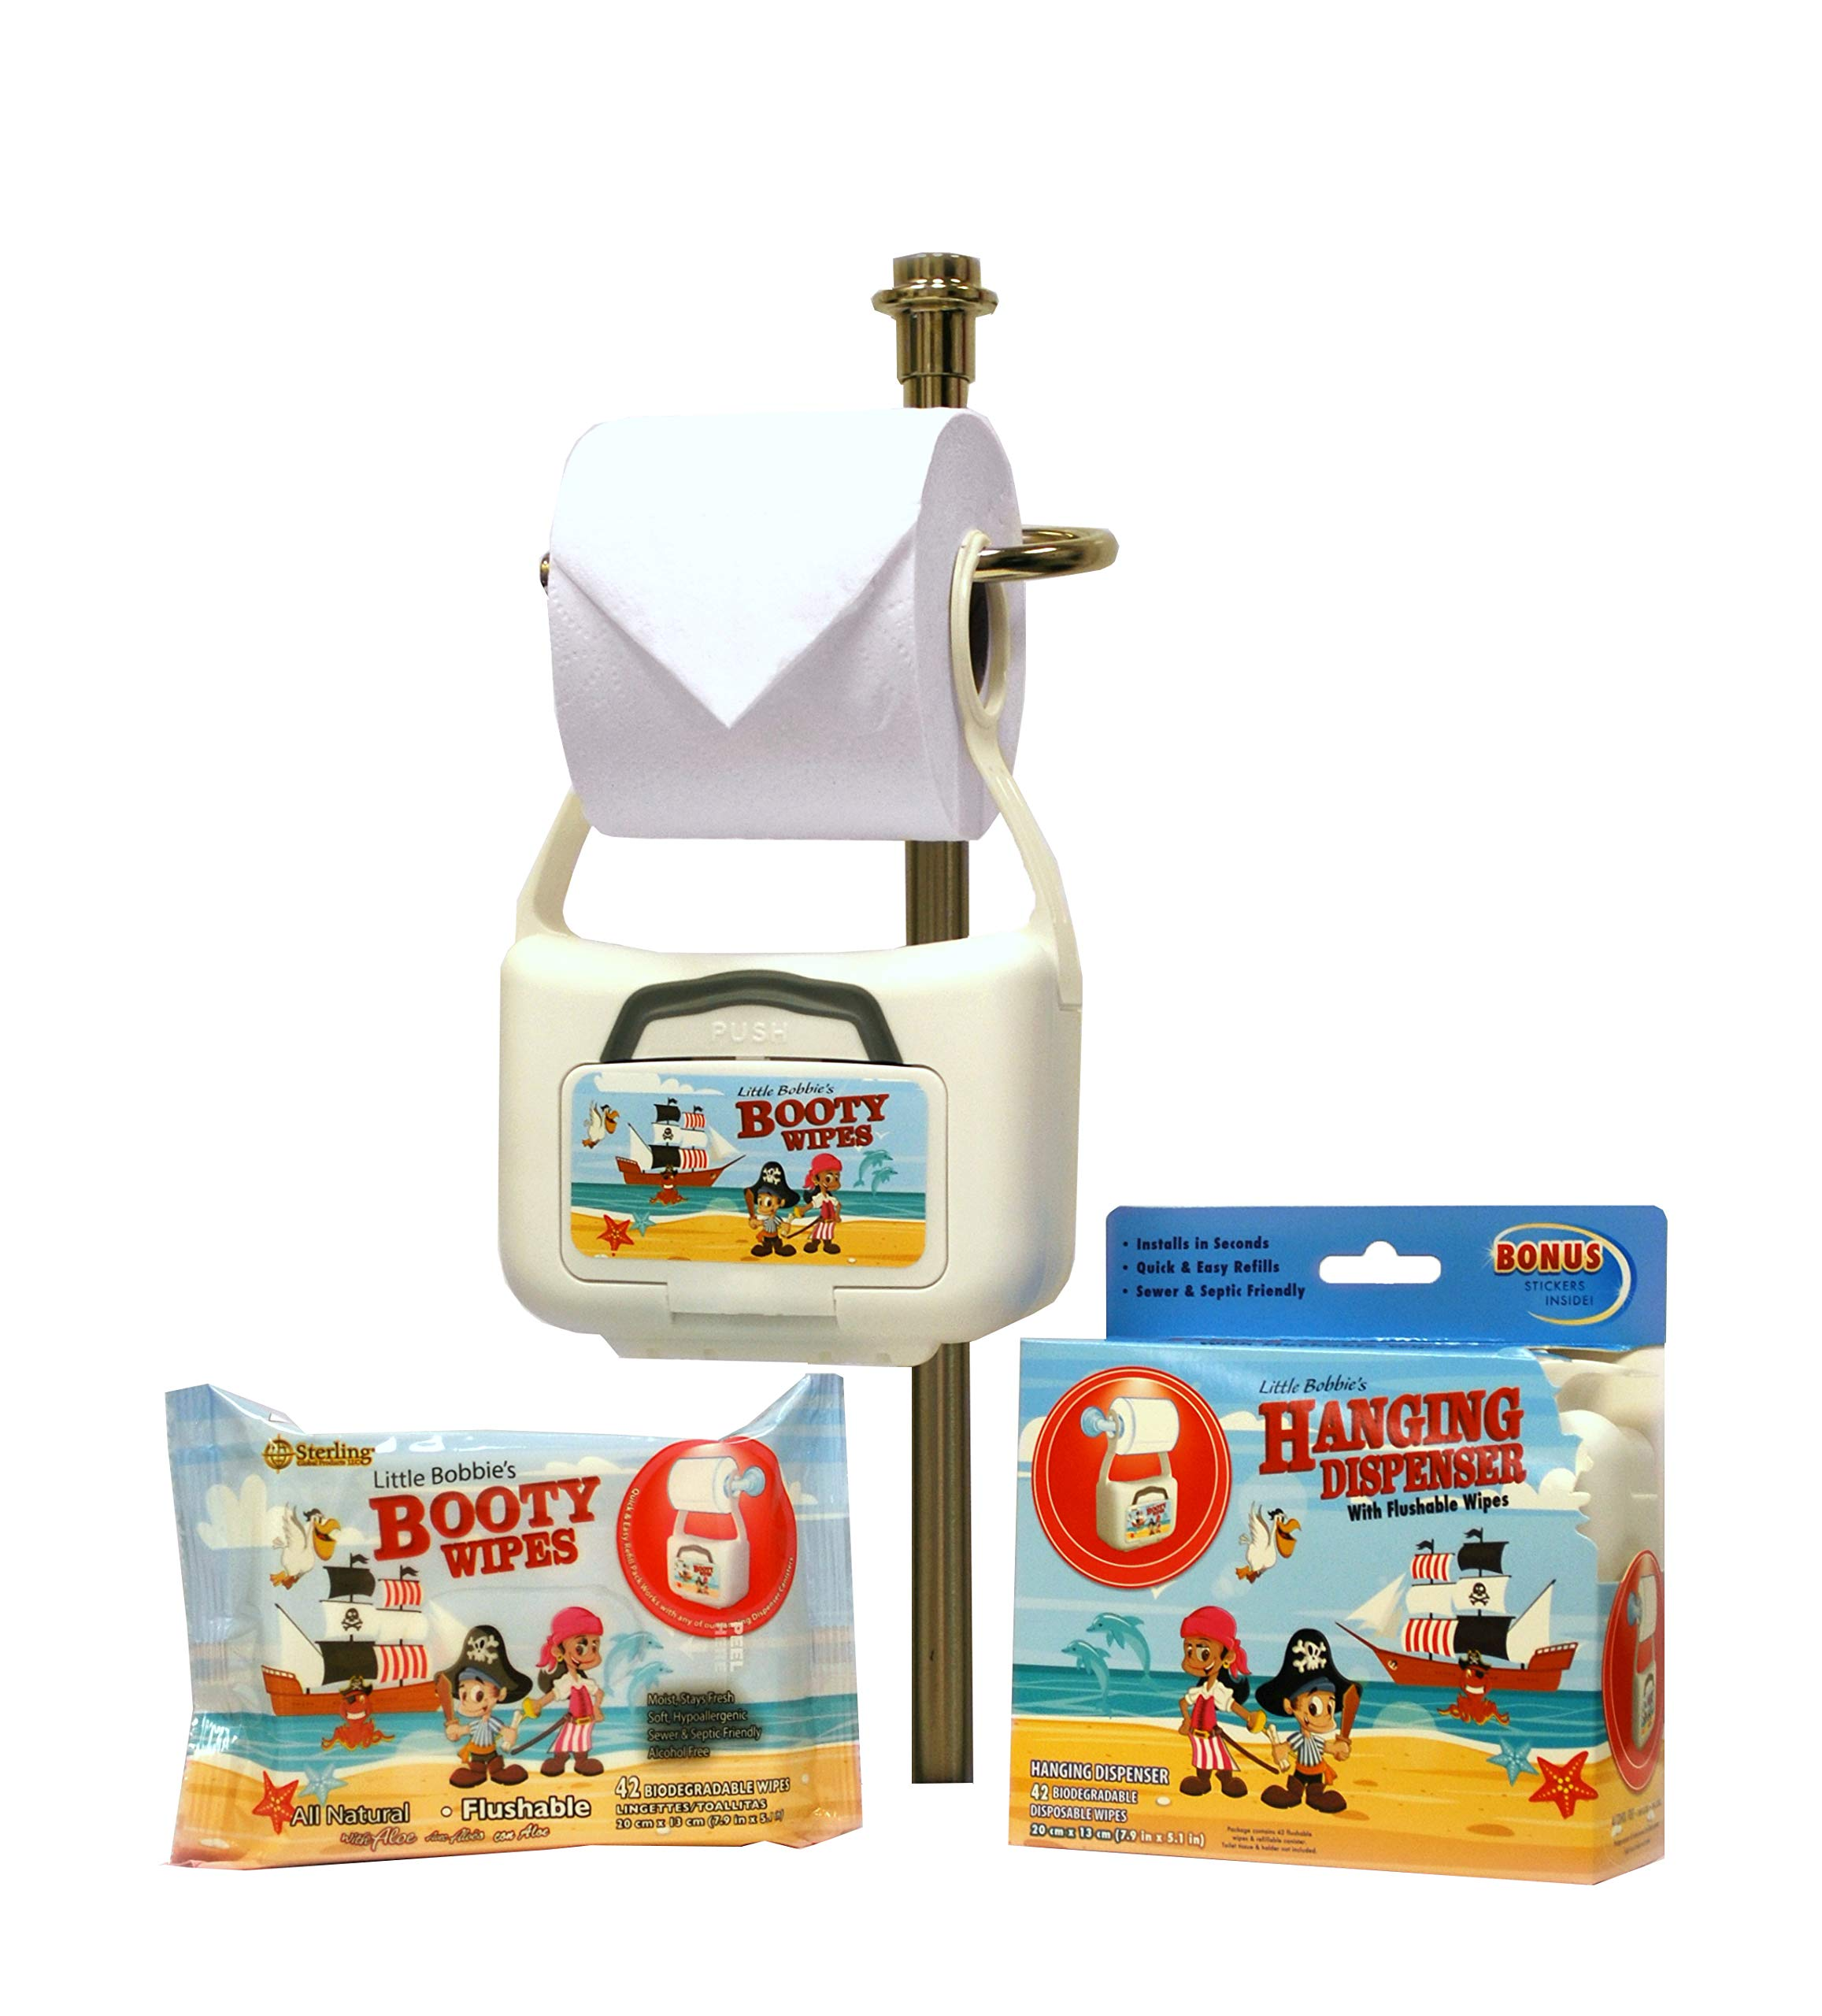 Little Bobbie's Booty Wipes Refillable Hanging Flushable Wipes Dispenser & 1 - 42ct Flushable, All Natural and Biodegradable Refill Wipes Pack by Little Bobbie's Booty Wipes